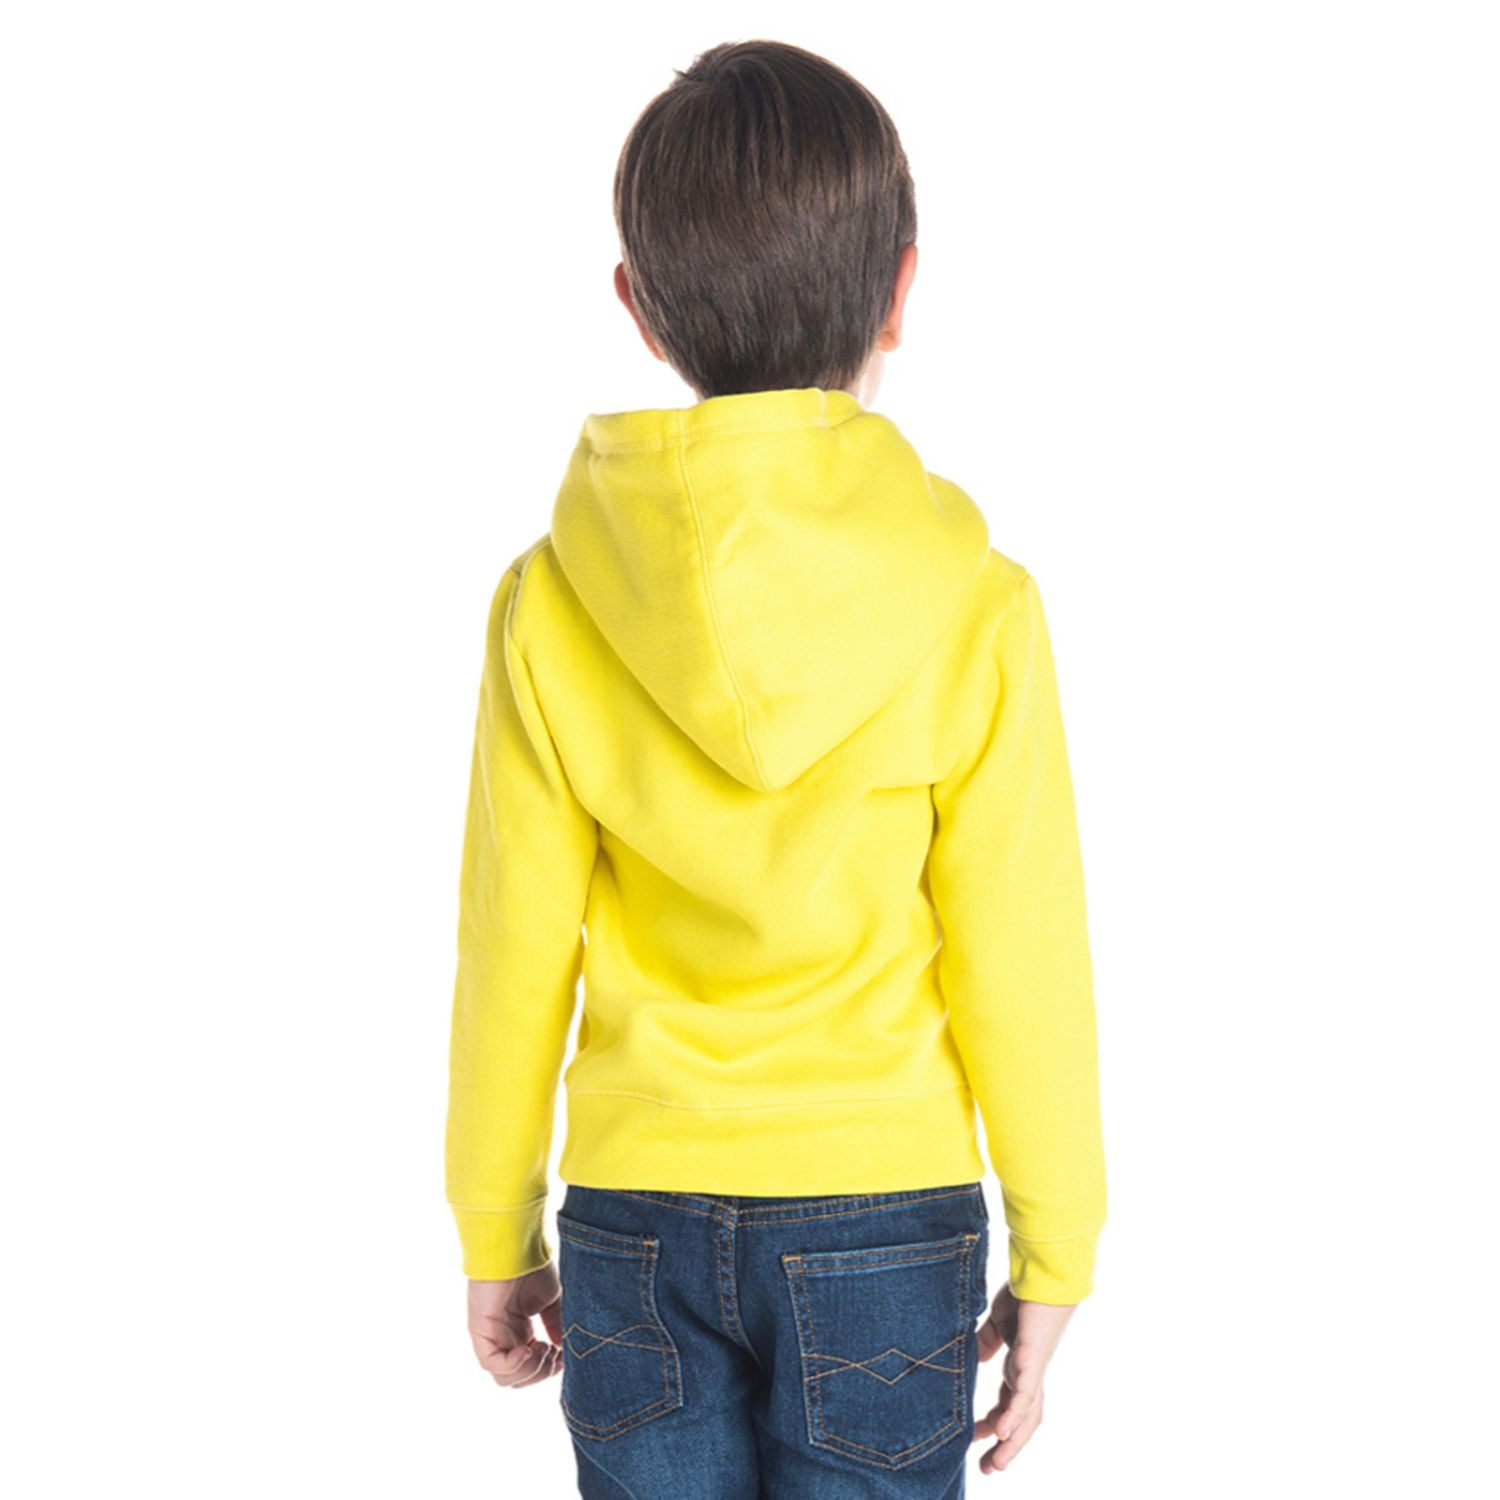 Sporty Helmet Sweatshirt for Boys